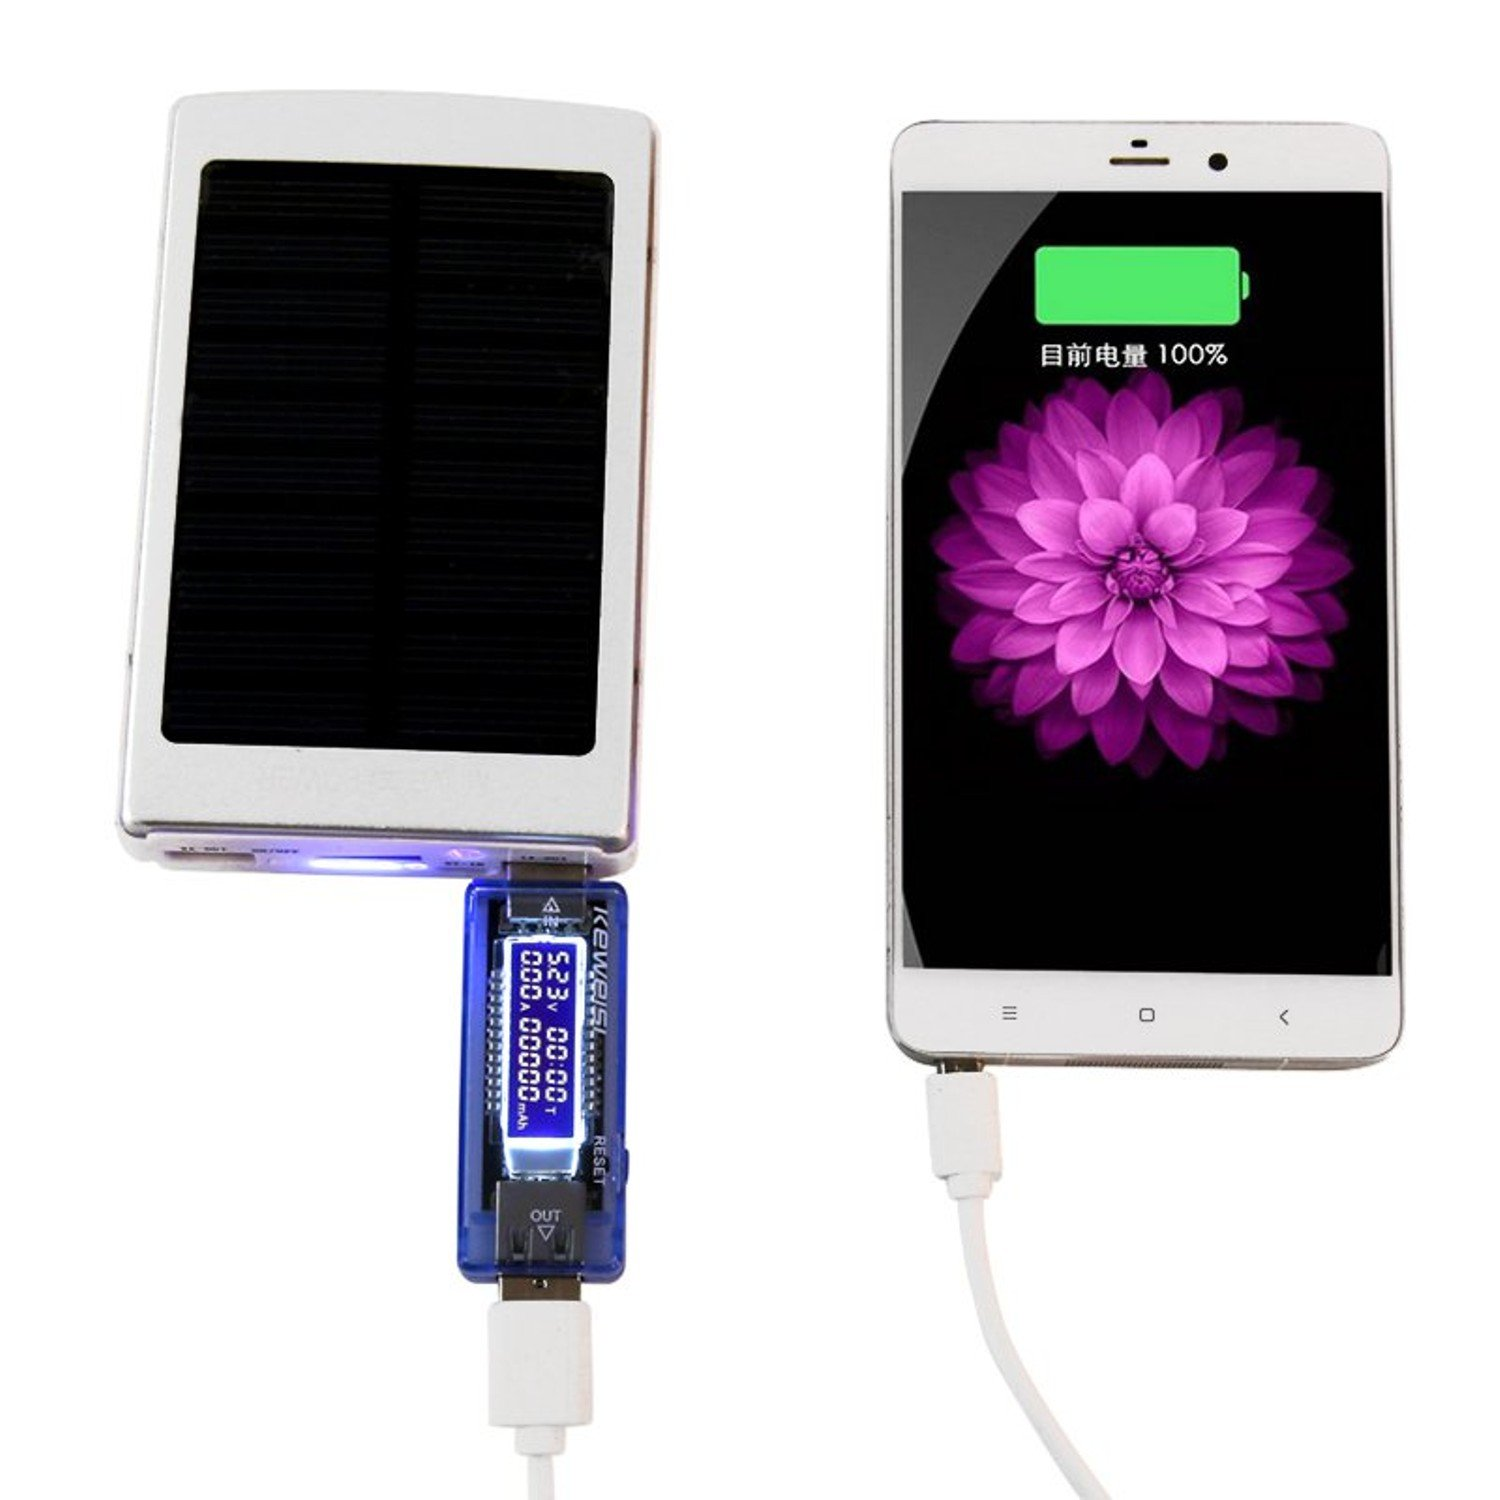 3 in 1 Battery Tester Voltage Current Detector Mobile Power Voltage Current Meter USB Charger Doctor by Gogi (Image #4)